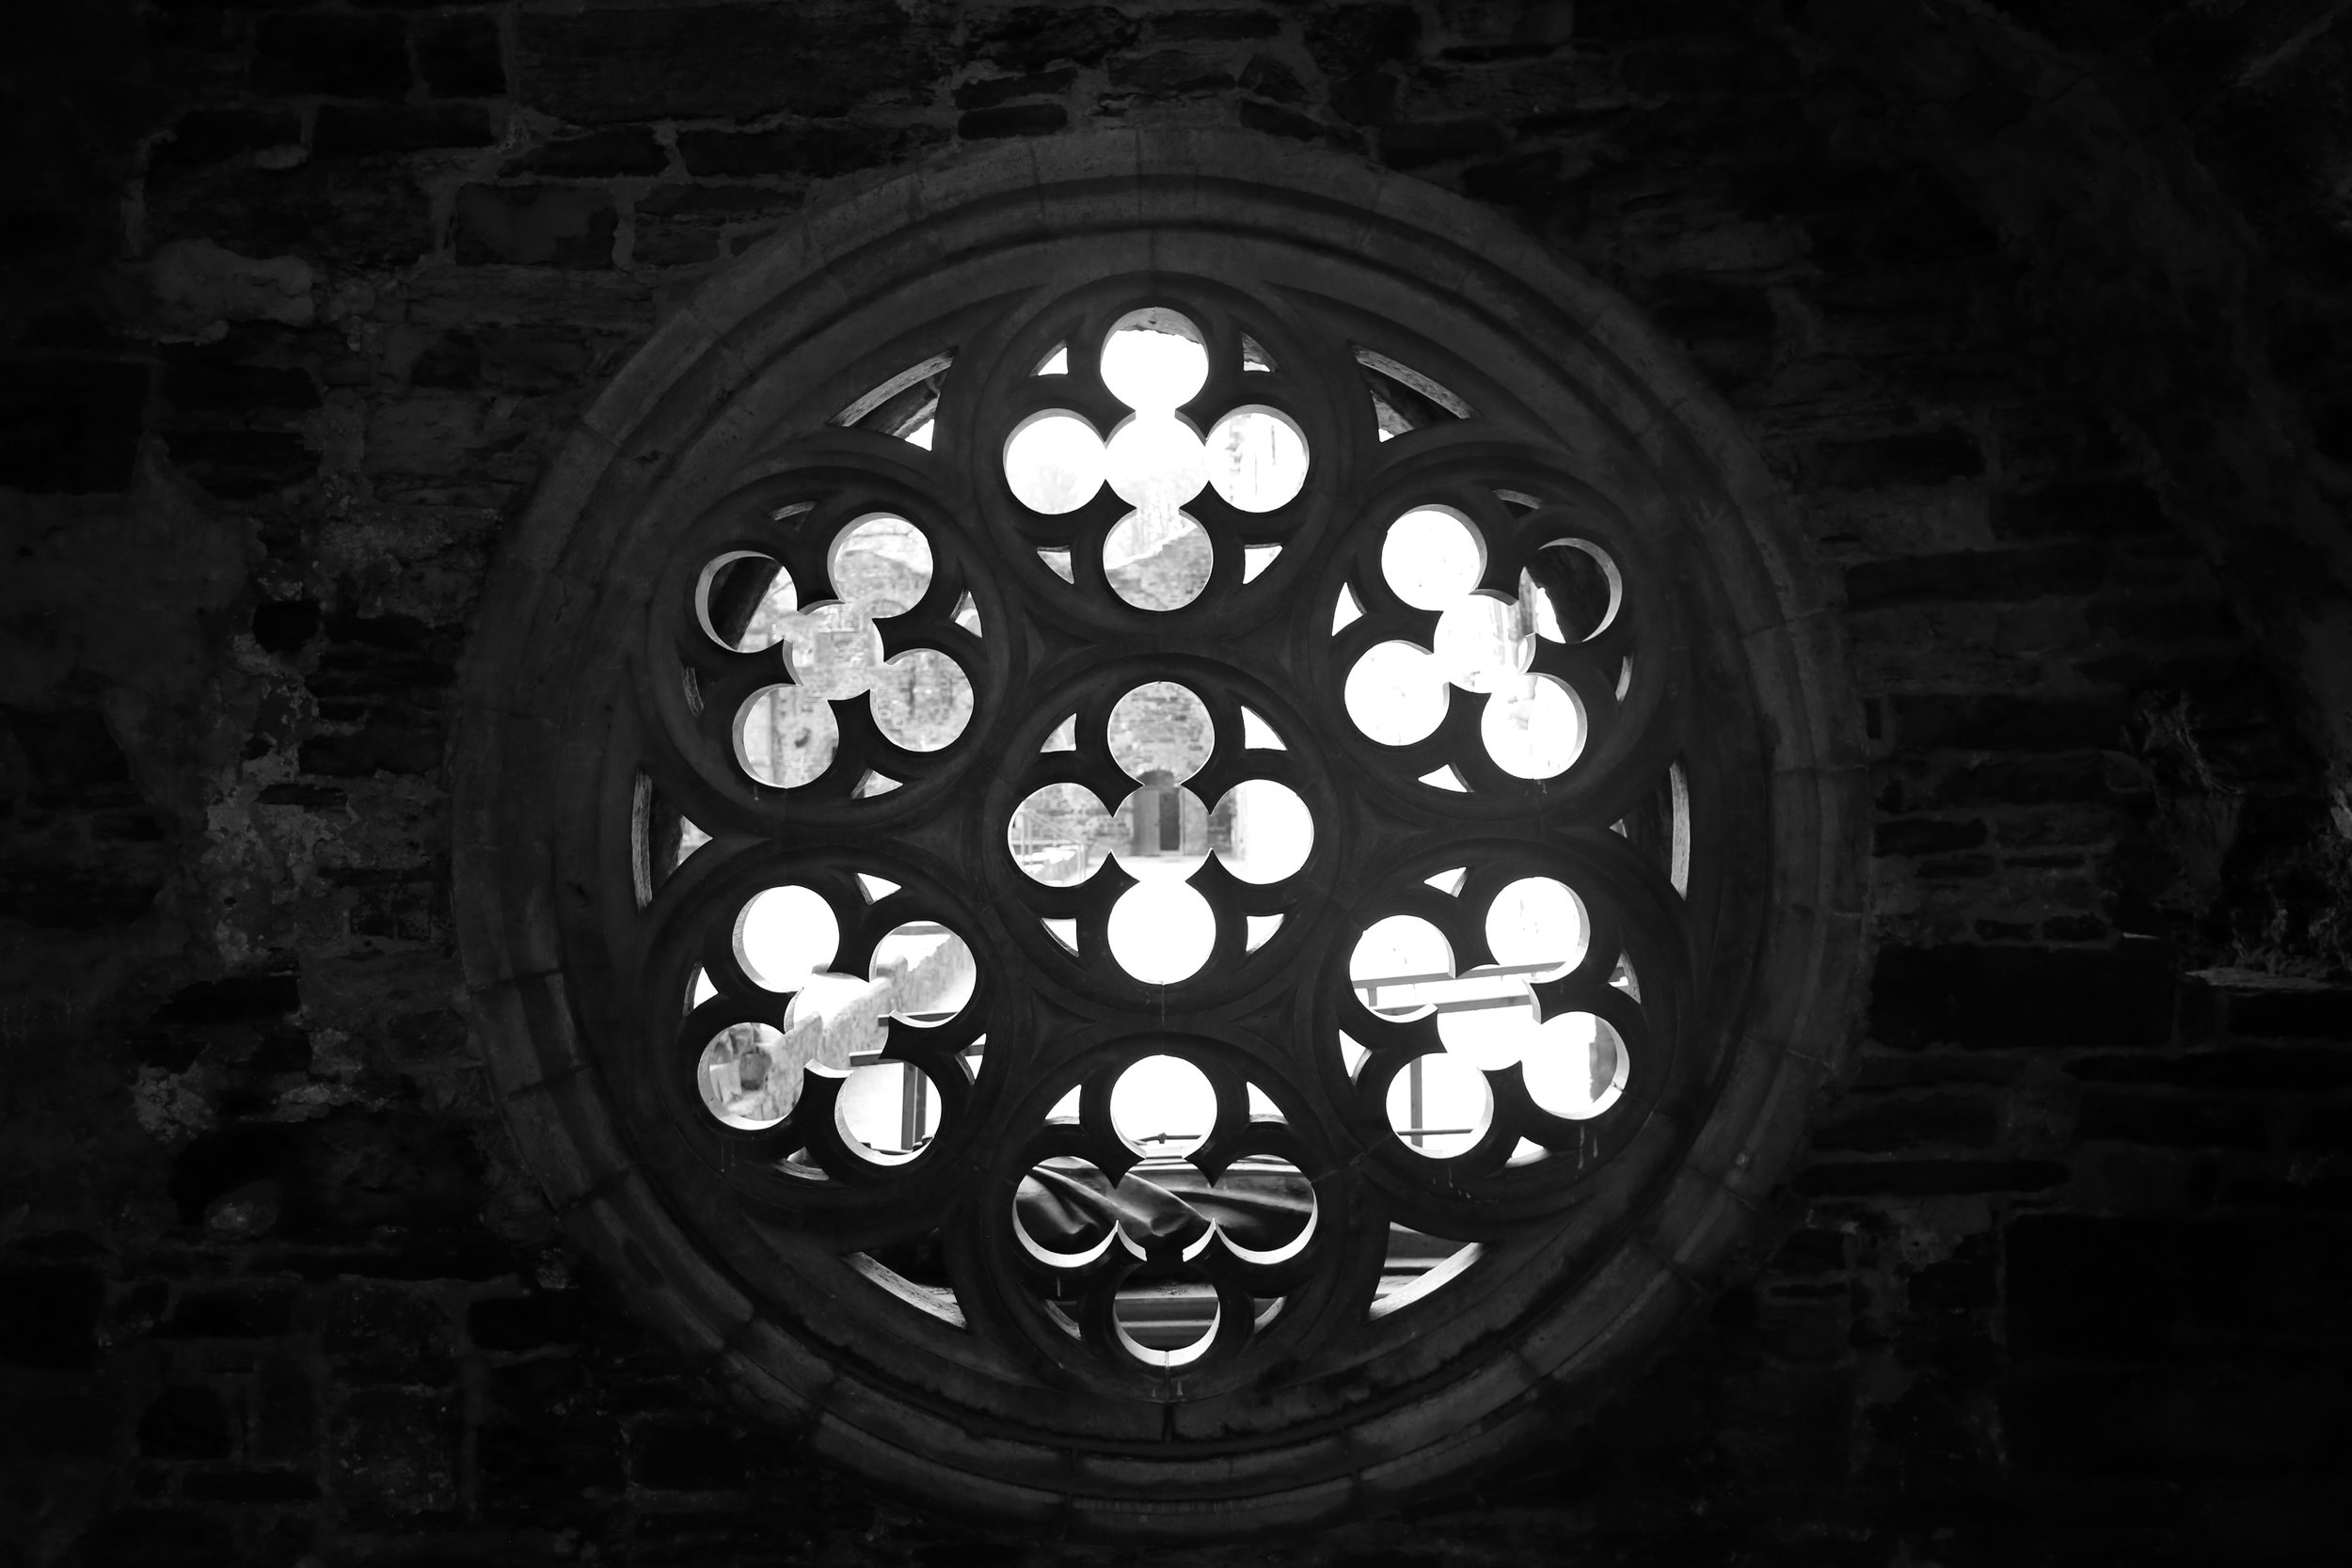 Round window with stone tracery, in an old Abbey of Belgium.